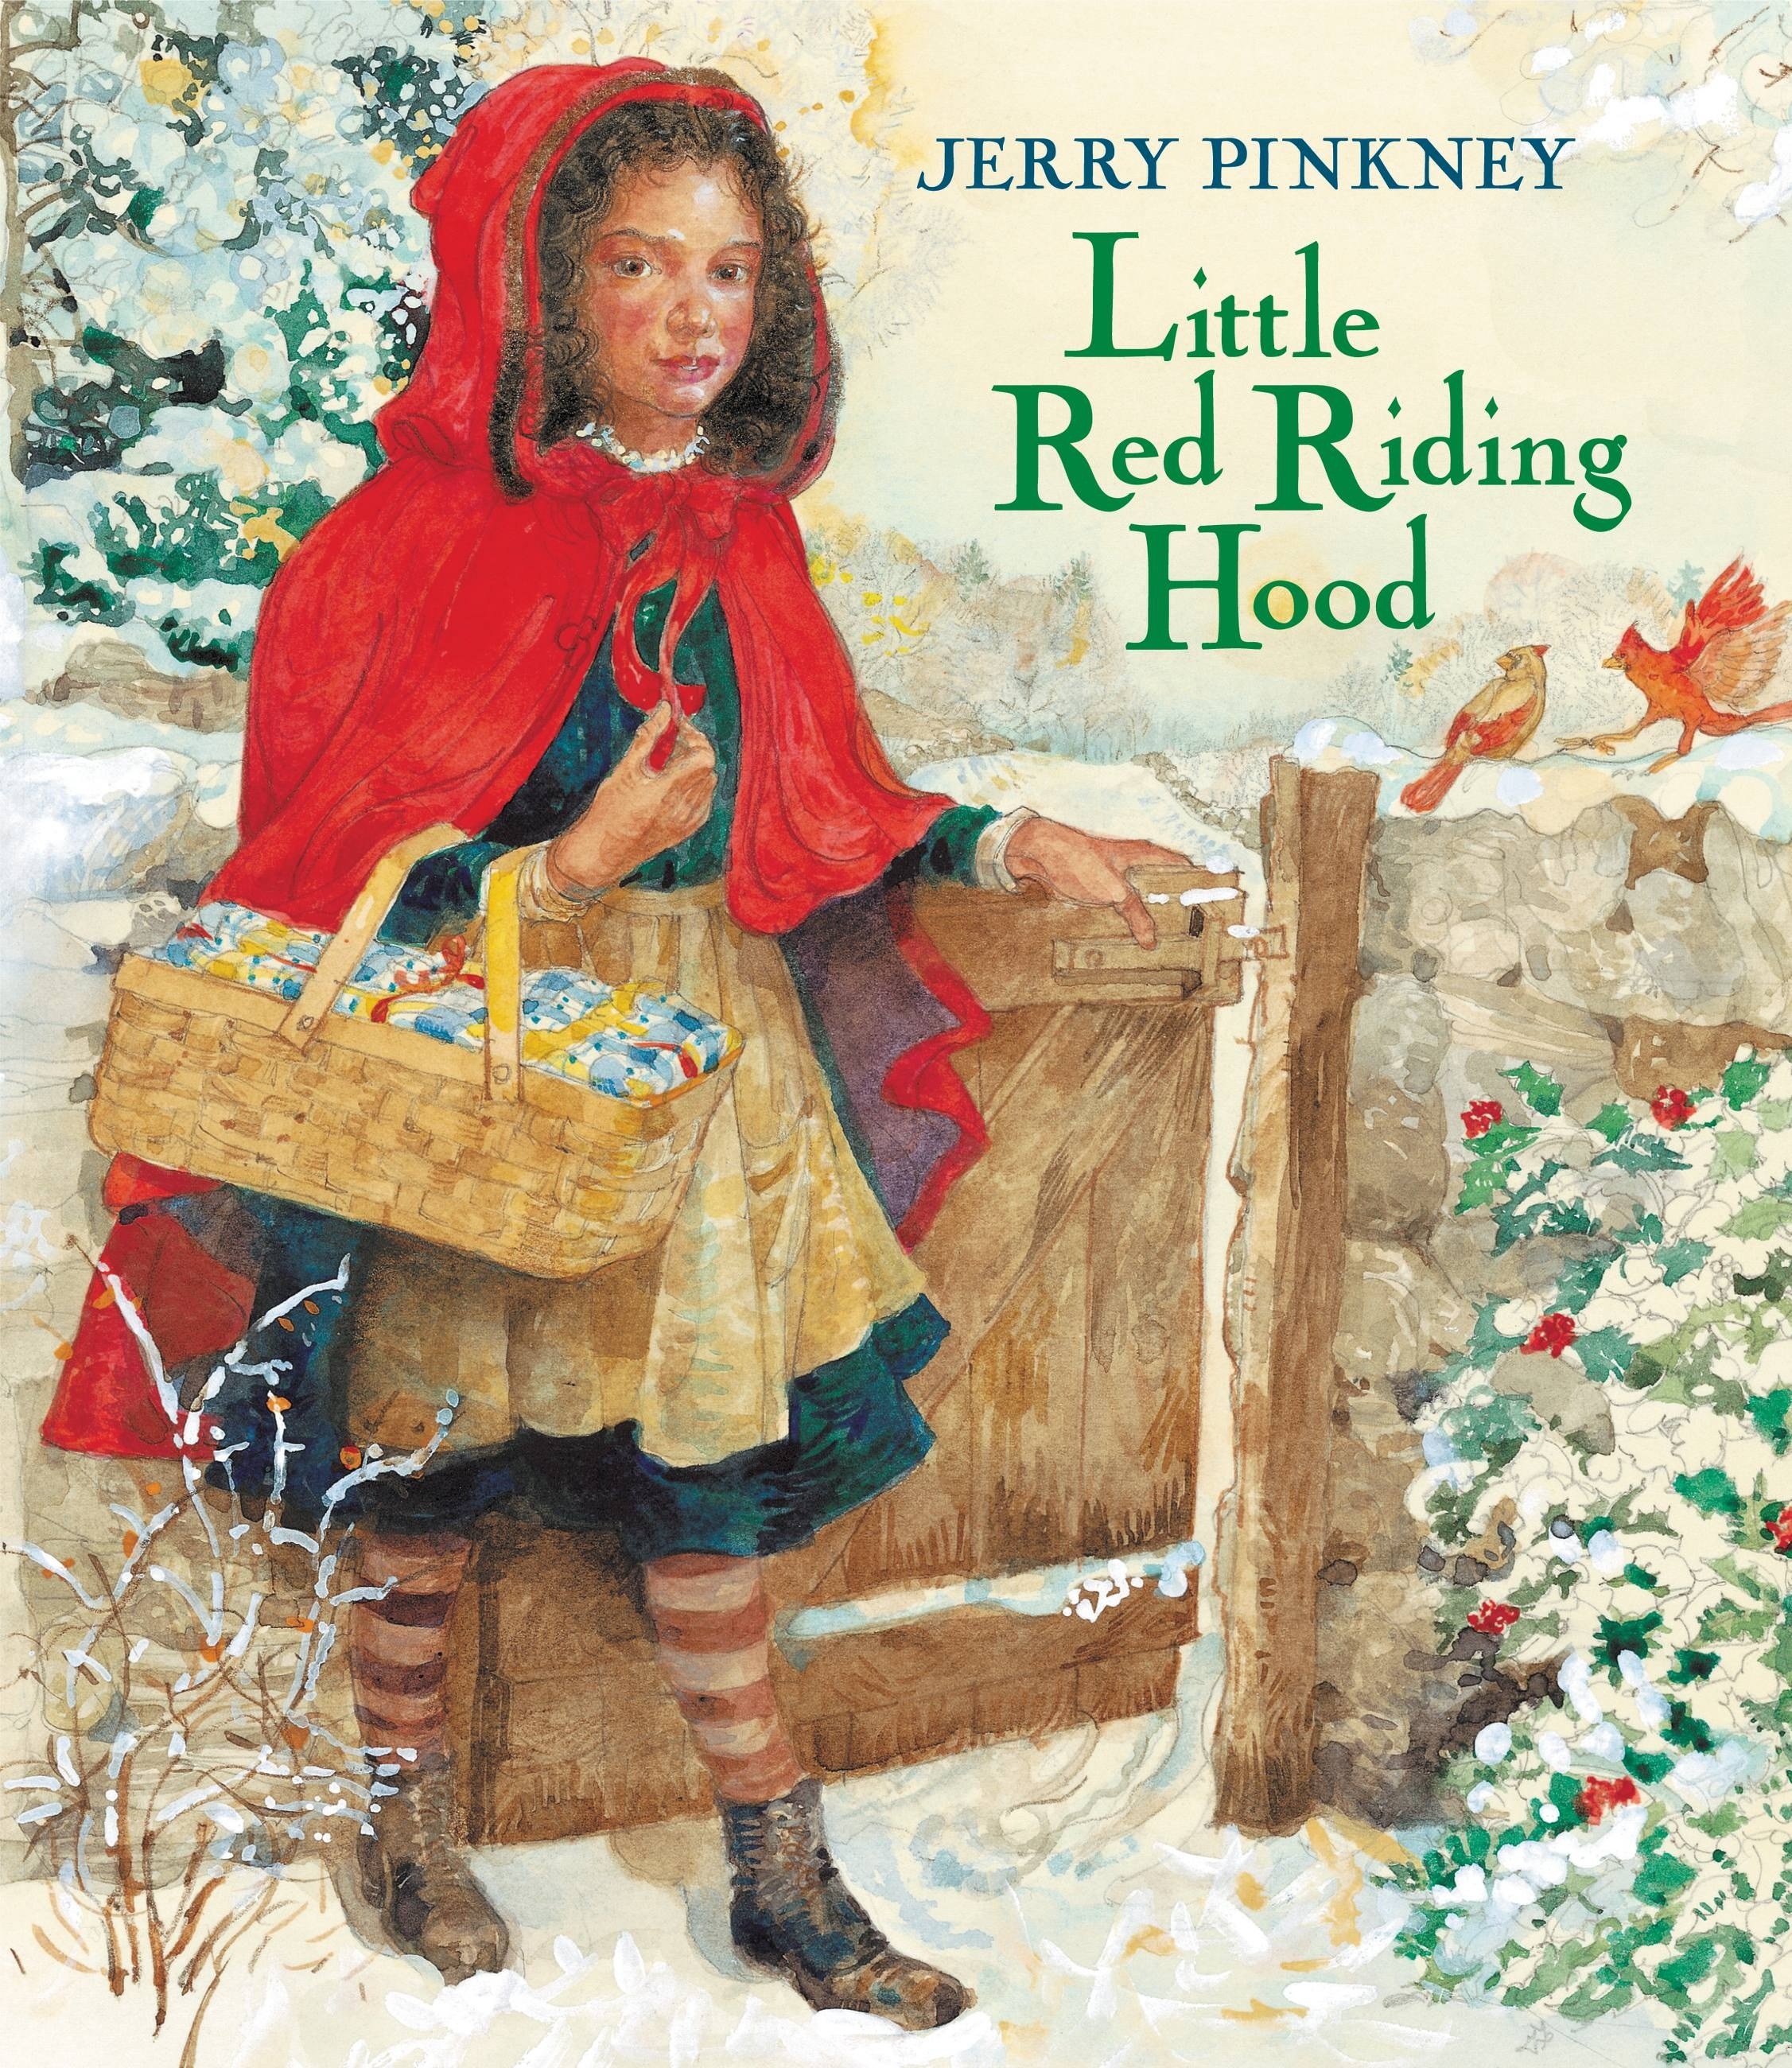 Little Red Riding Hood by Jerry Pinkney | Hachette Book Group